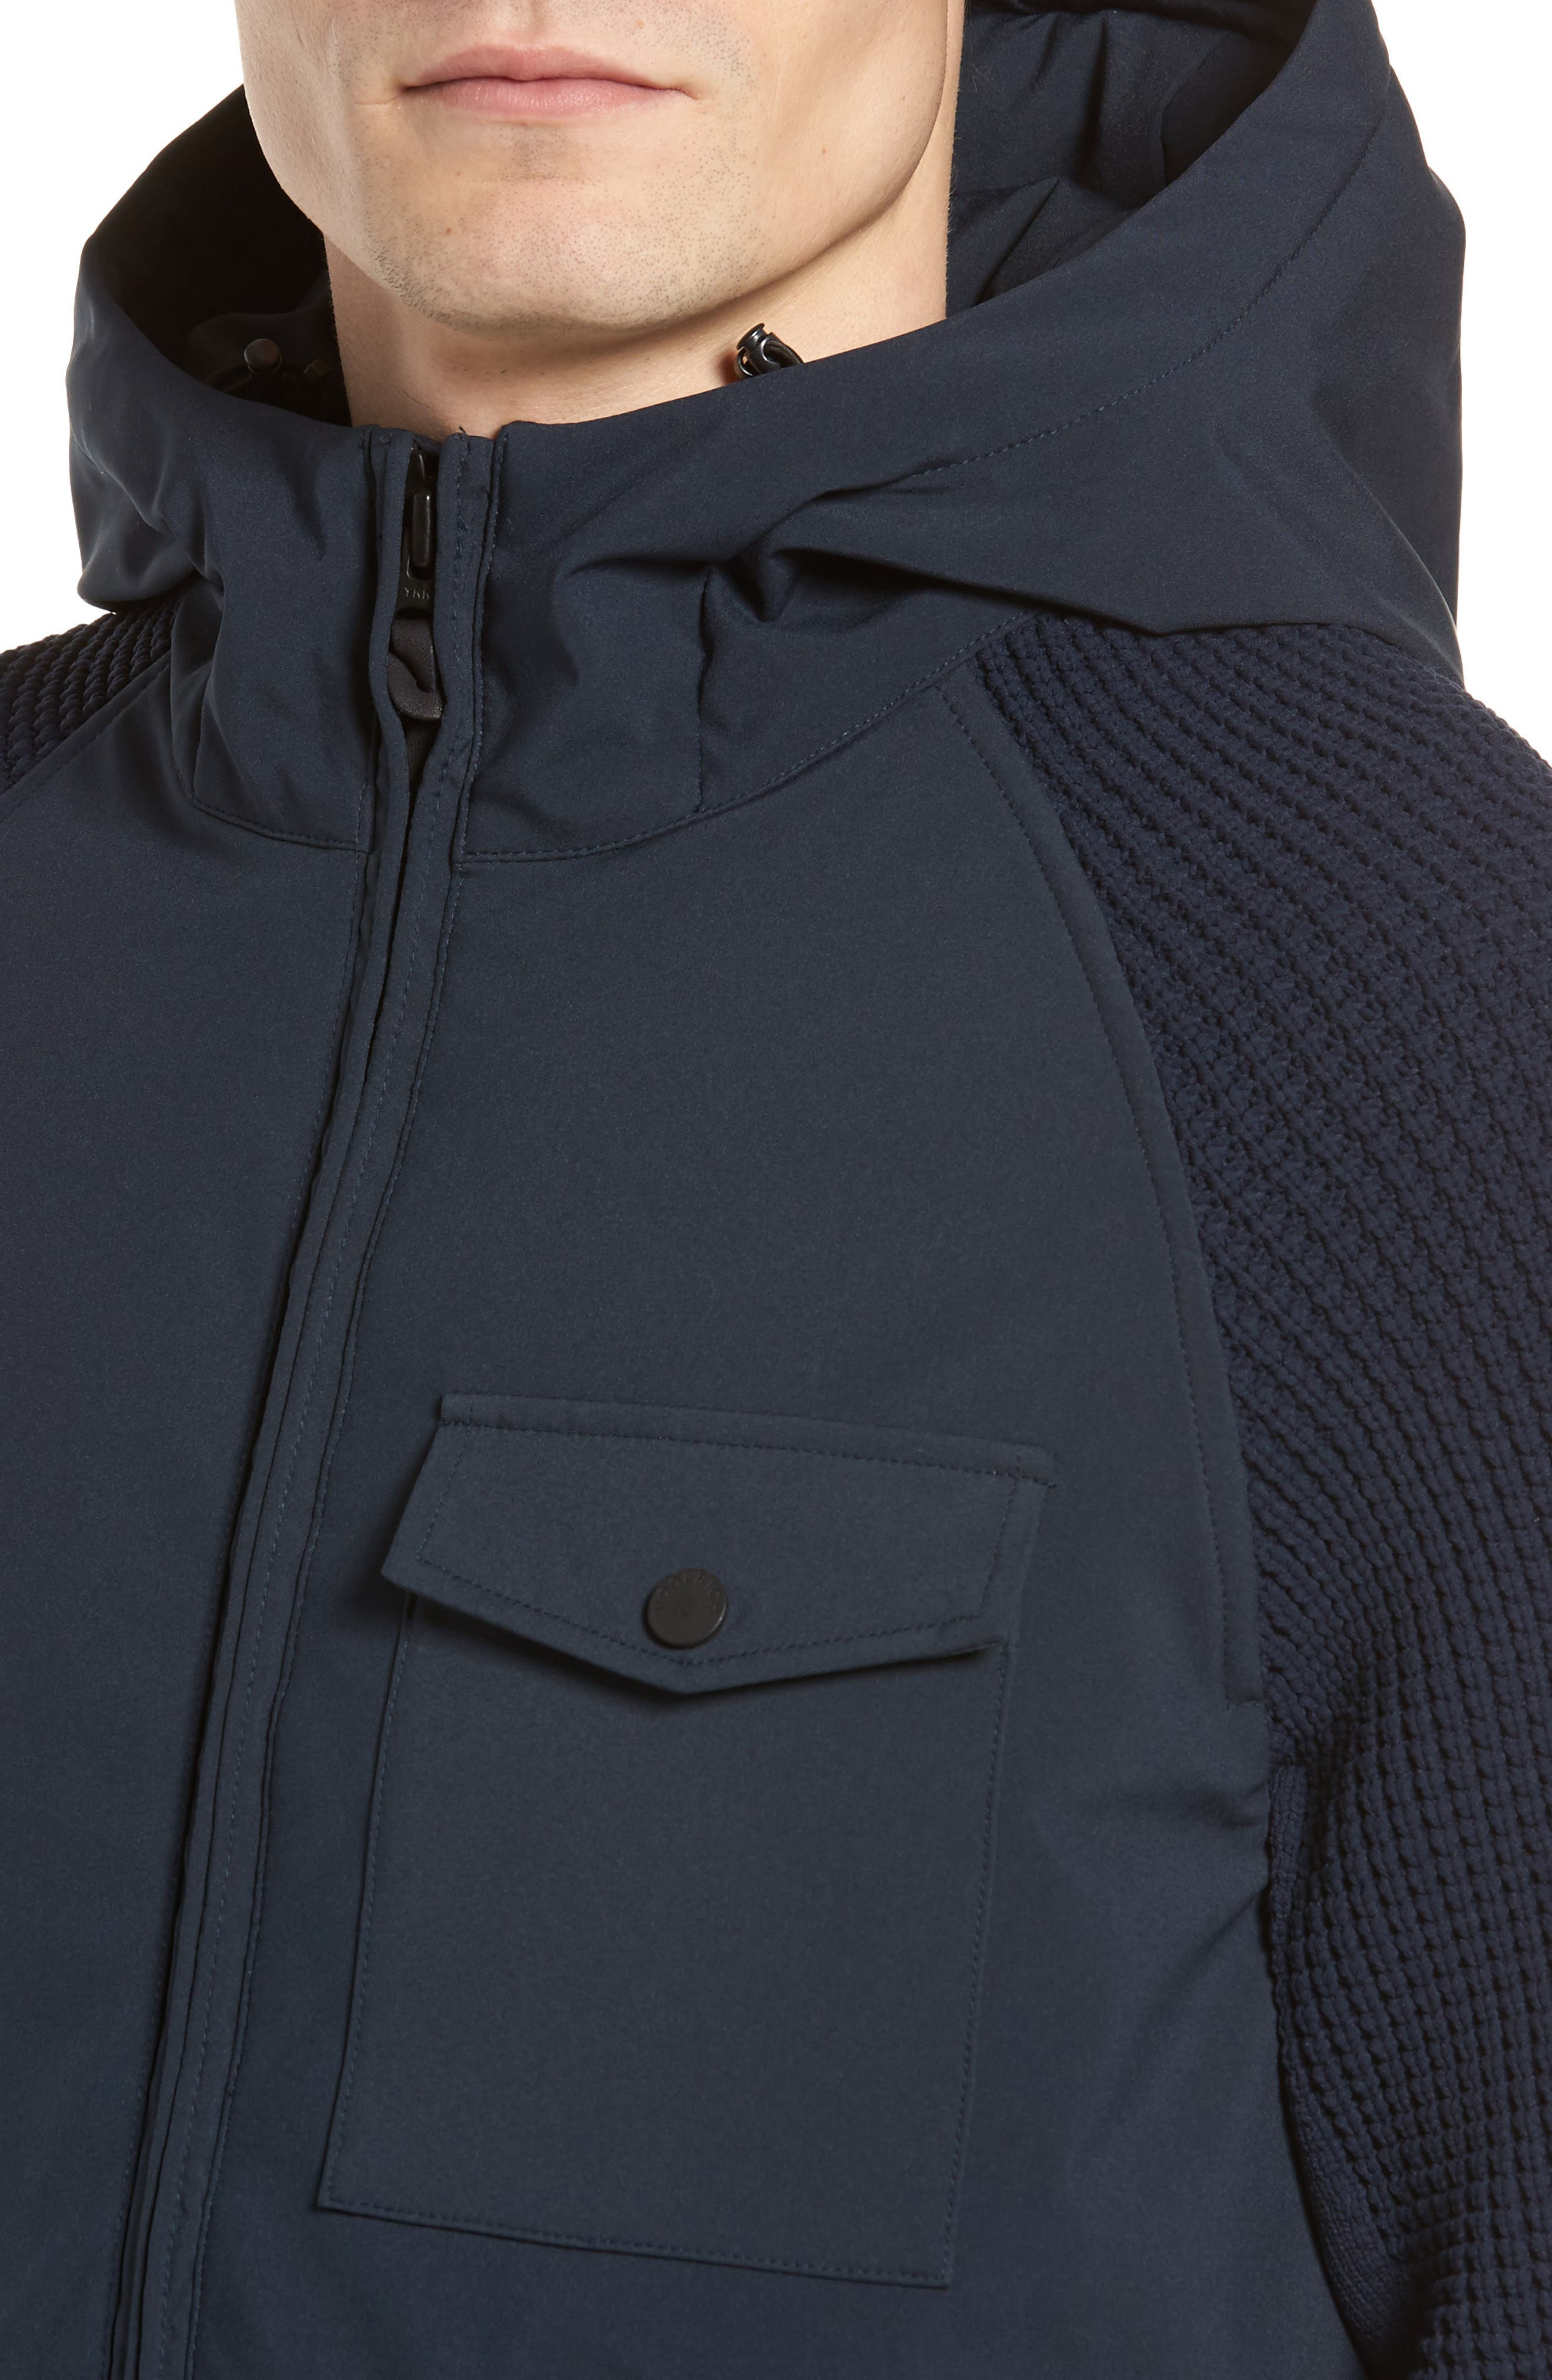 & Bros. Plum Run Jacket,                             Alternate thumbnail 4, color,                             400